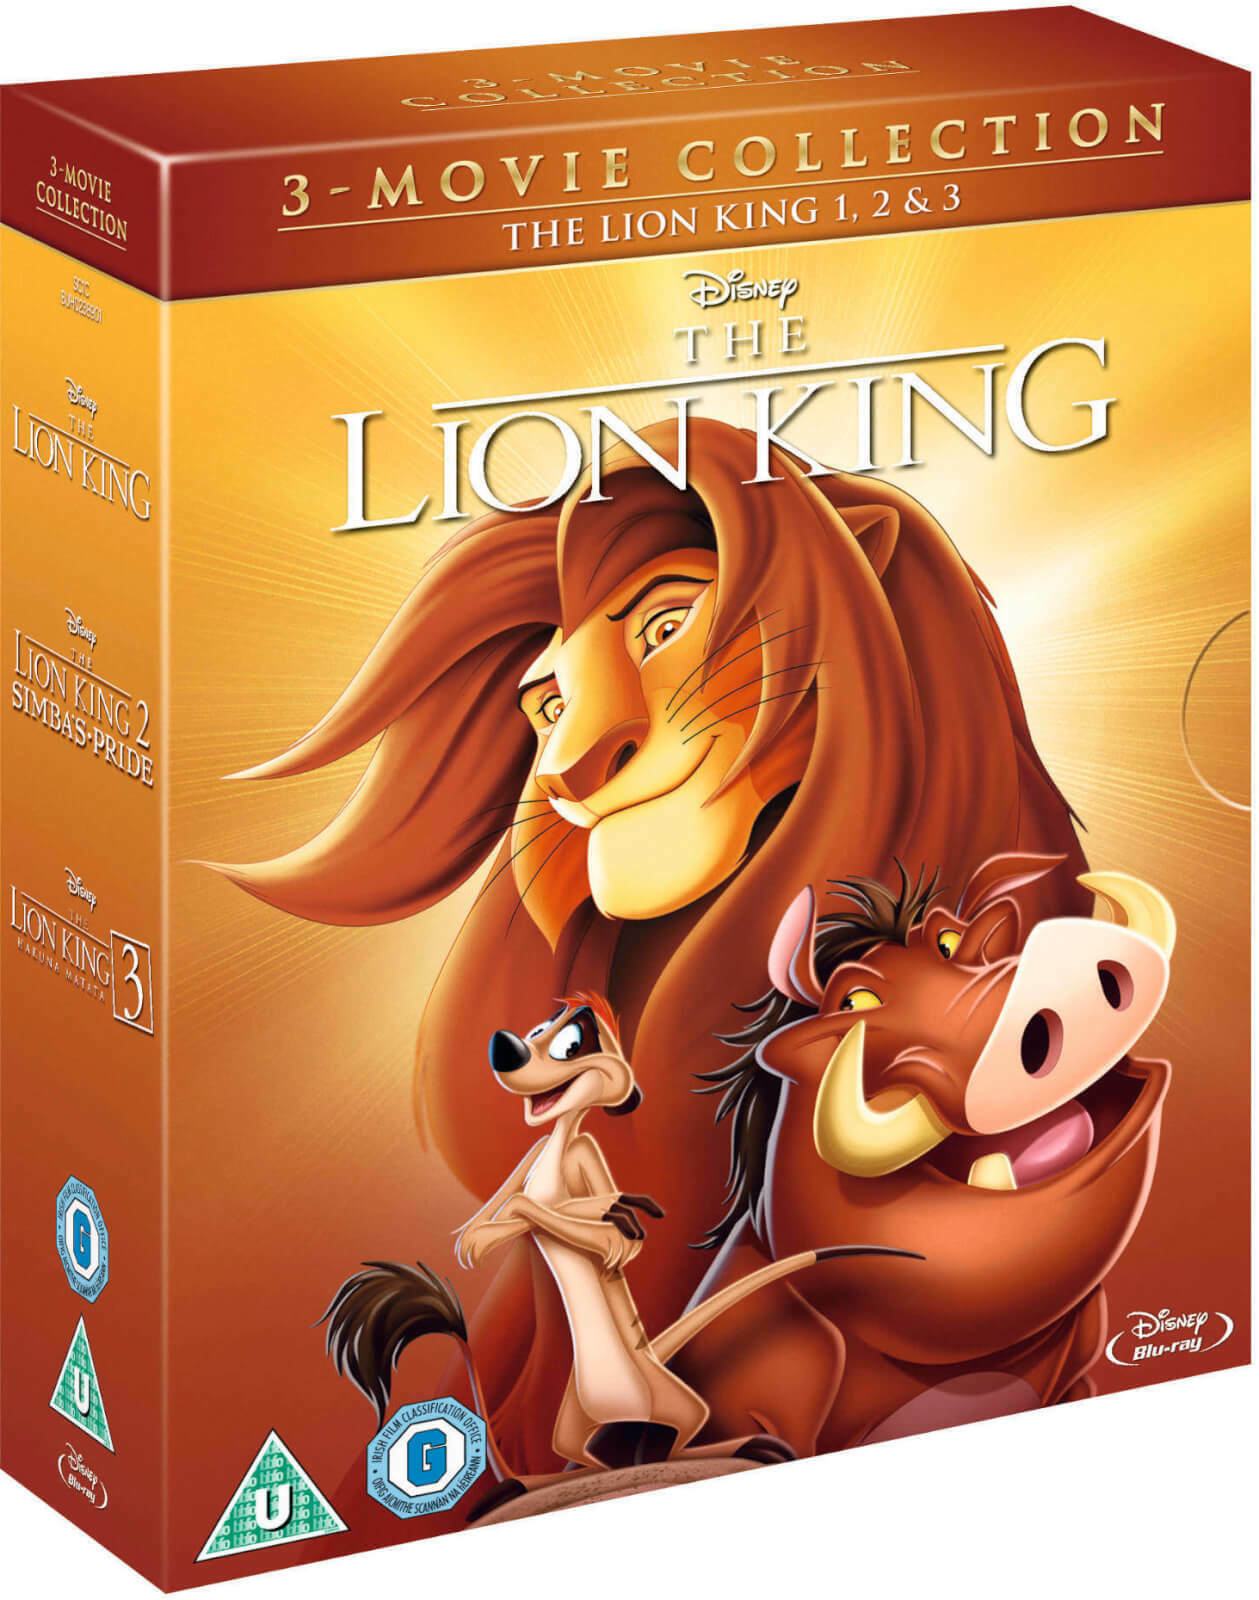 THE LION KING TRILOGY 1-3  Animated Disney Movie Collection